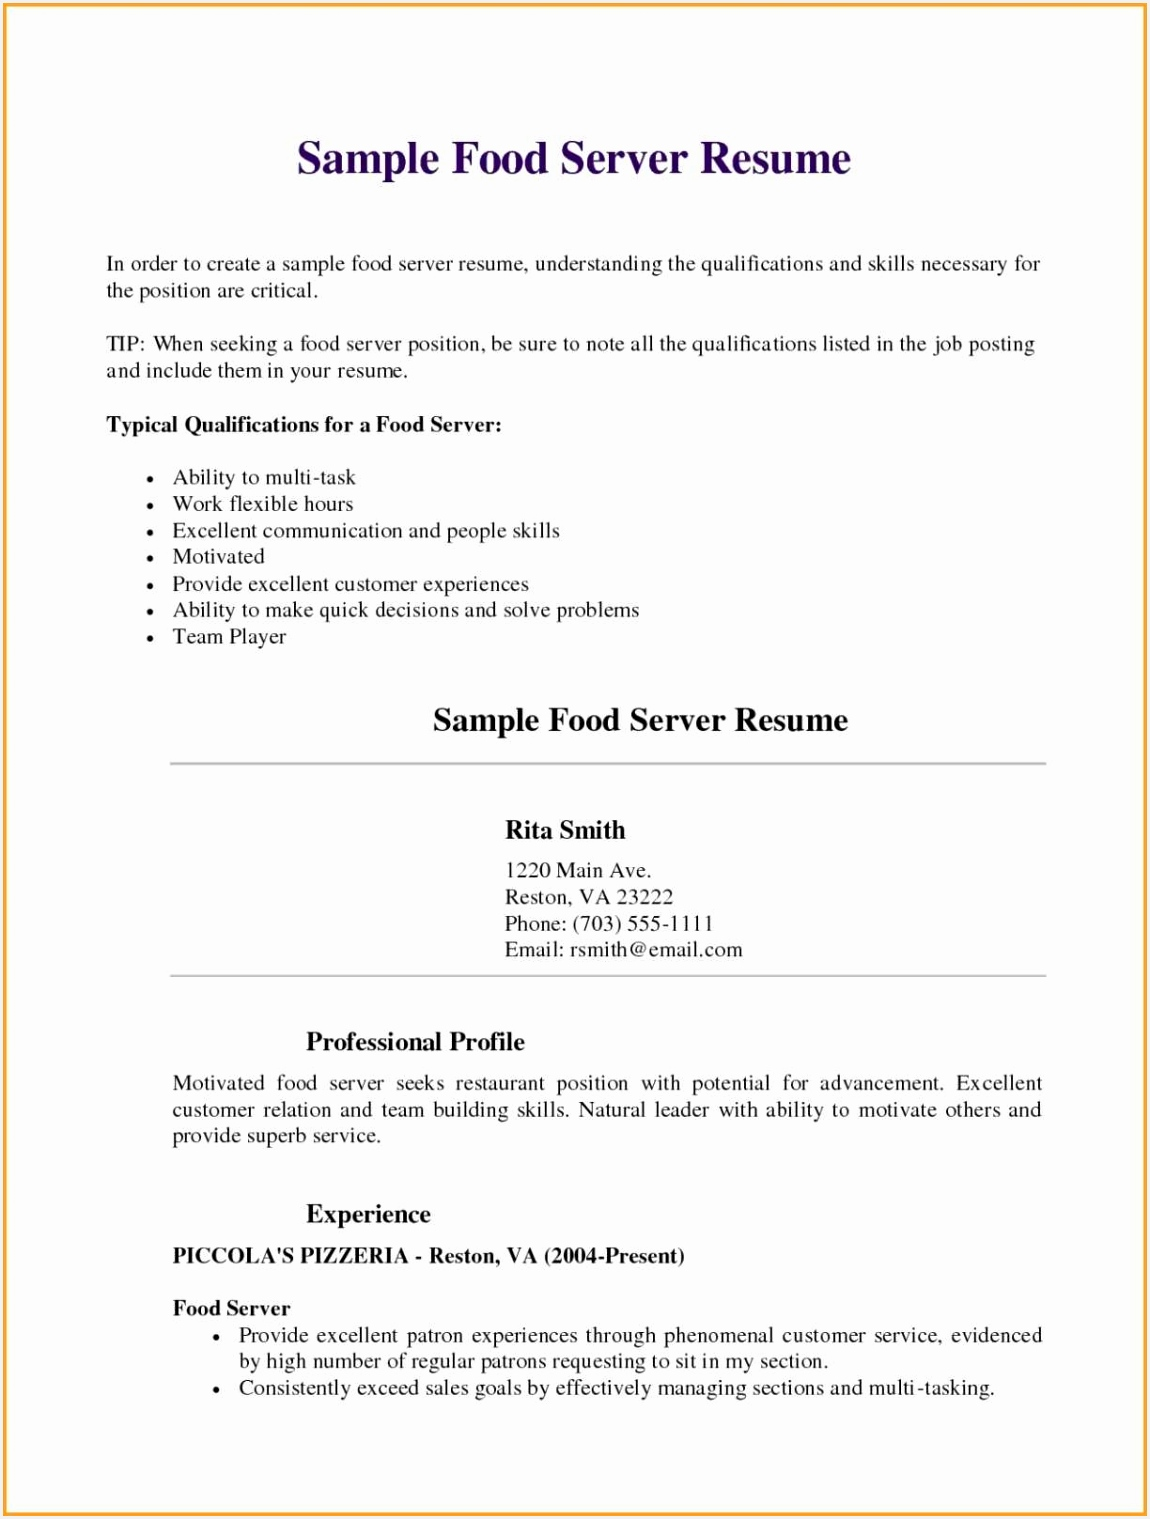 25 Sample Customer Service Specialist Cover Letter 15191150agqec